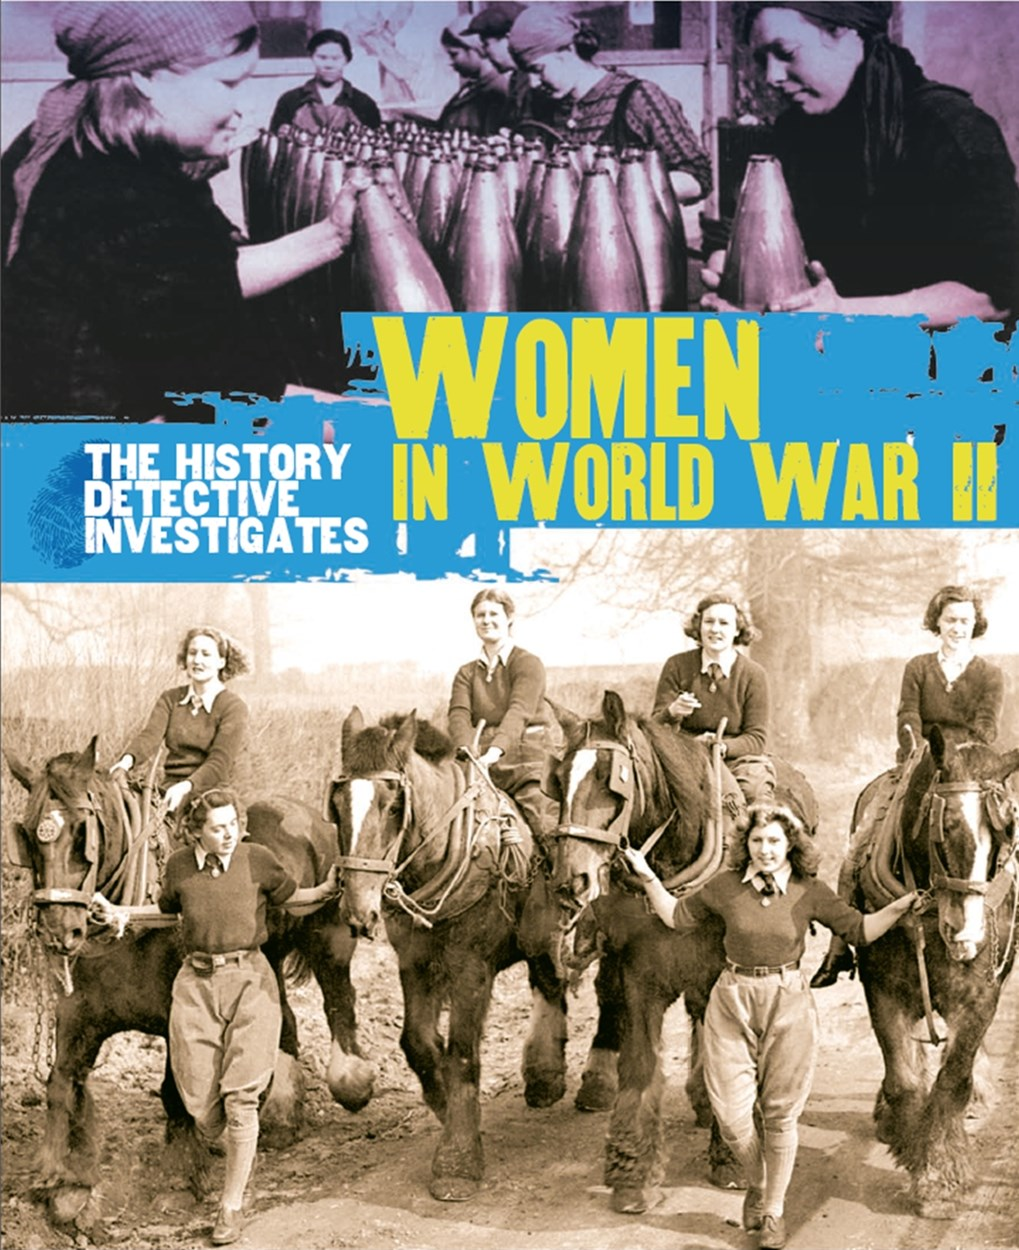 The History Detective Investigates: Women in World War II